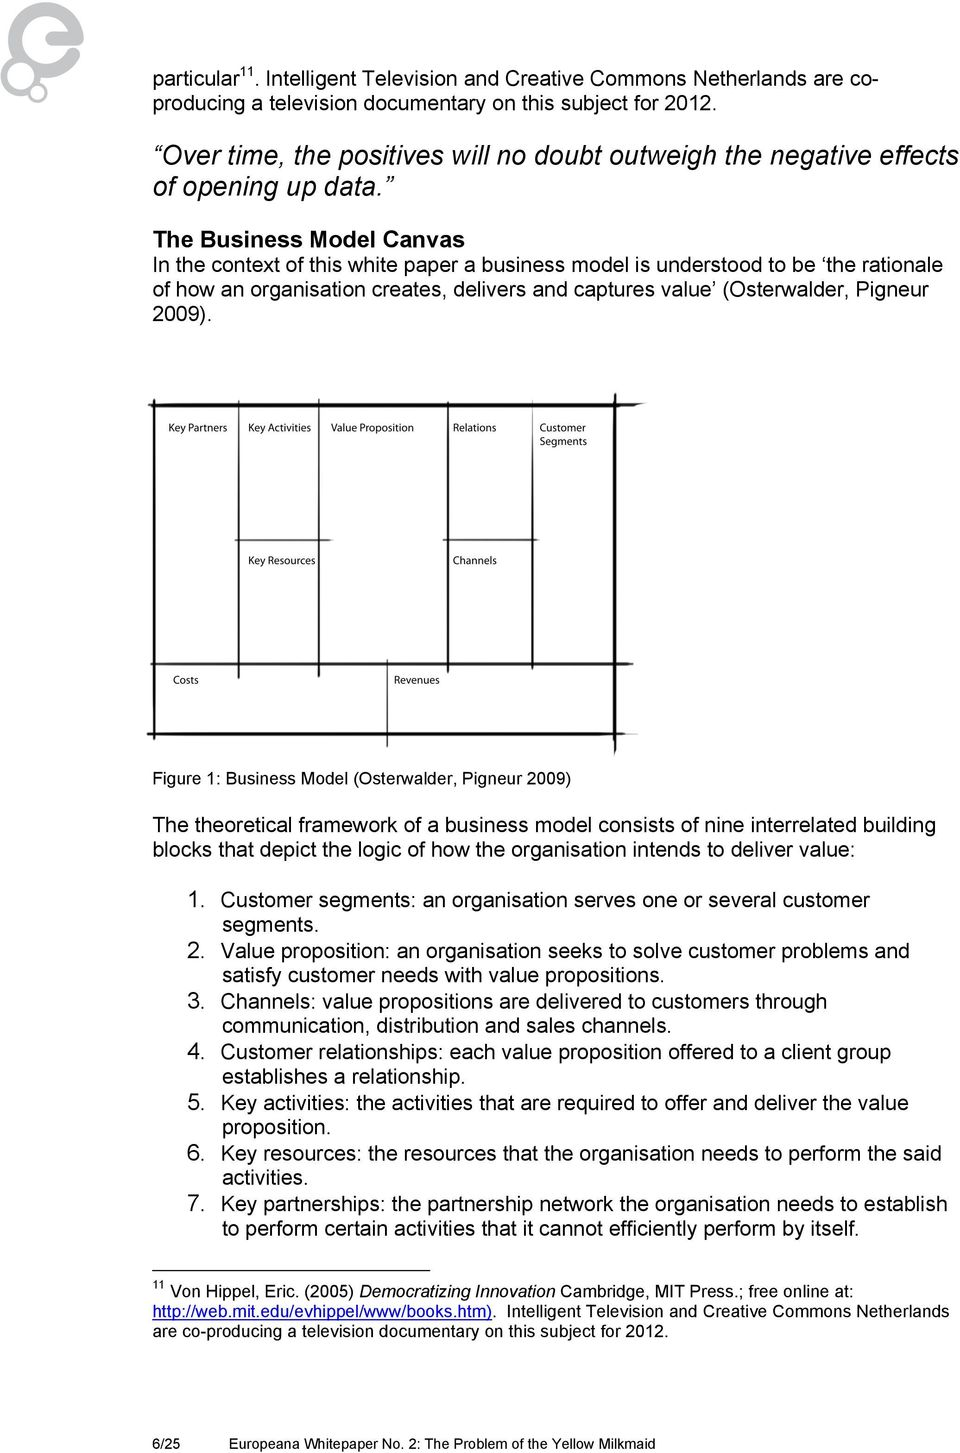 The Business Model Canvas In the context of this white paper a business model is understood to be the rationale of how an organisation creates, delivers and captures value (Osterwalder, Pigneur 2009).